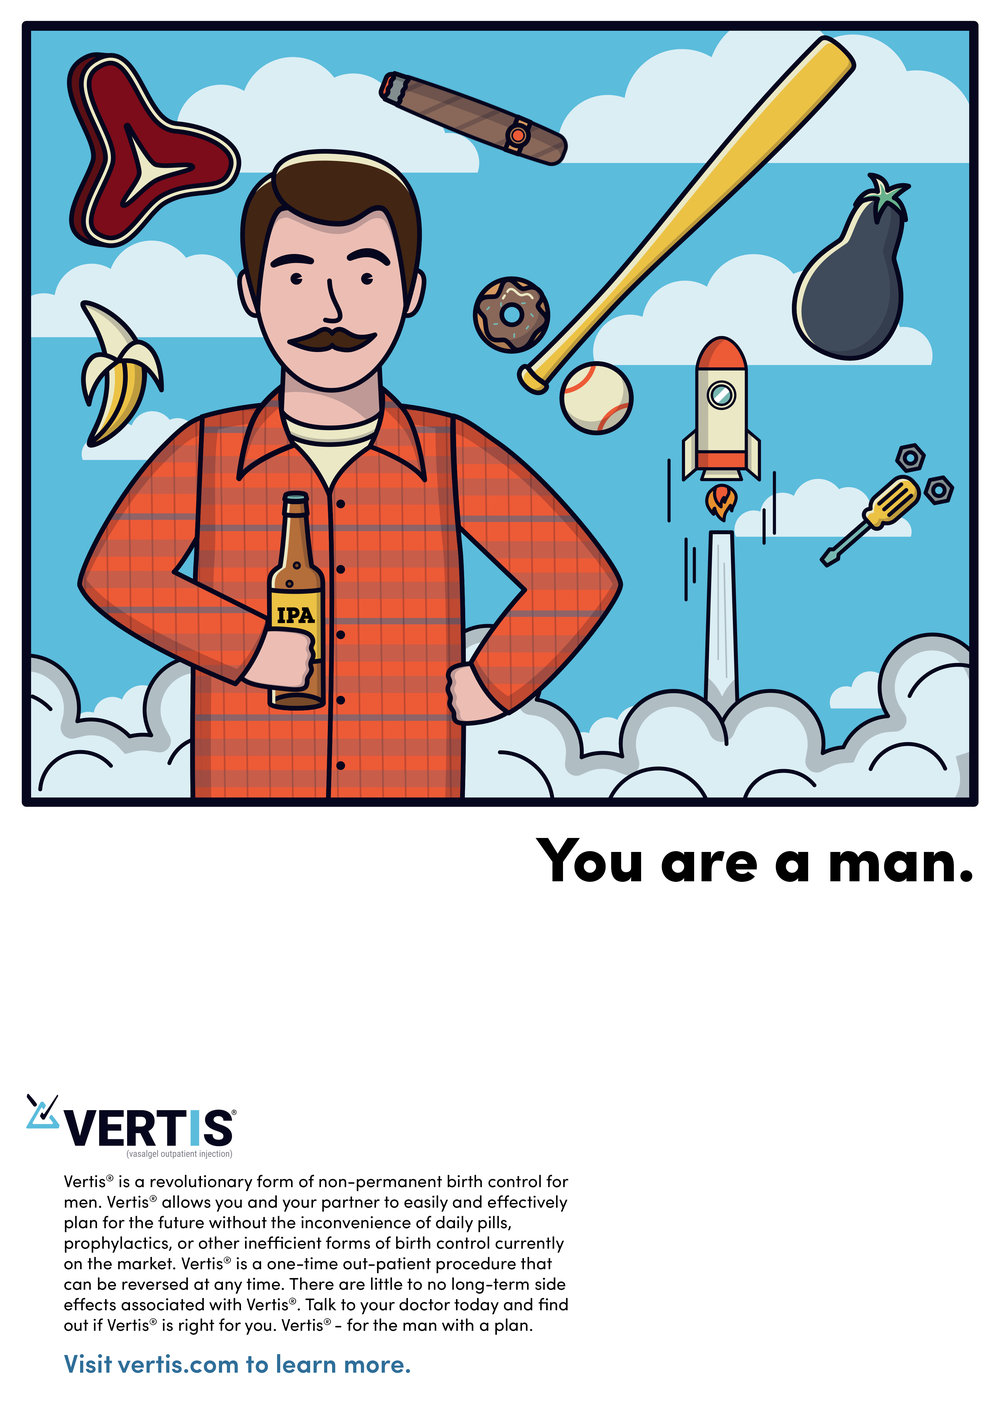 "The ""You Are a Man"" campaign is a satirical take on masculinity in the vein of cultural icons like Ron Swanson. At the same time, it aims to be empowering and aspirational. It encourages men to take control of their reproductive health, and to examine the role that they play in family planning. By inspiring them to be accountable for birth control in their relationships (a role traditionally held by women), it turns the ""manly"" stereotype on its head. Essentially, the message is that it is ""manly""* to share the responsibility of family planning with your partner. The campaign uses illustration to convey humor and approachability, and it uses subliminal penises to be subversive and eye-catching. The imagery is balanced with bold headlines and simple, informative copy about Vertis."